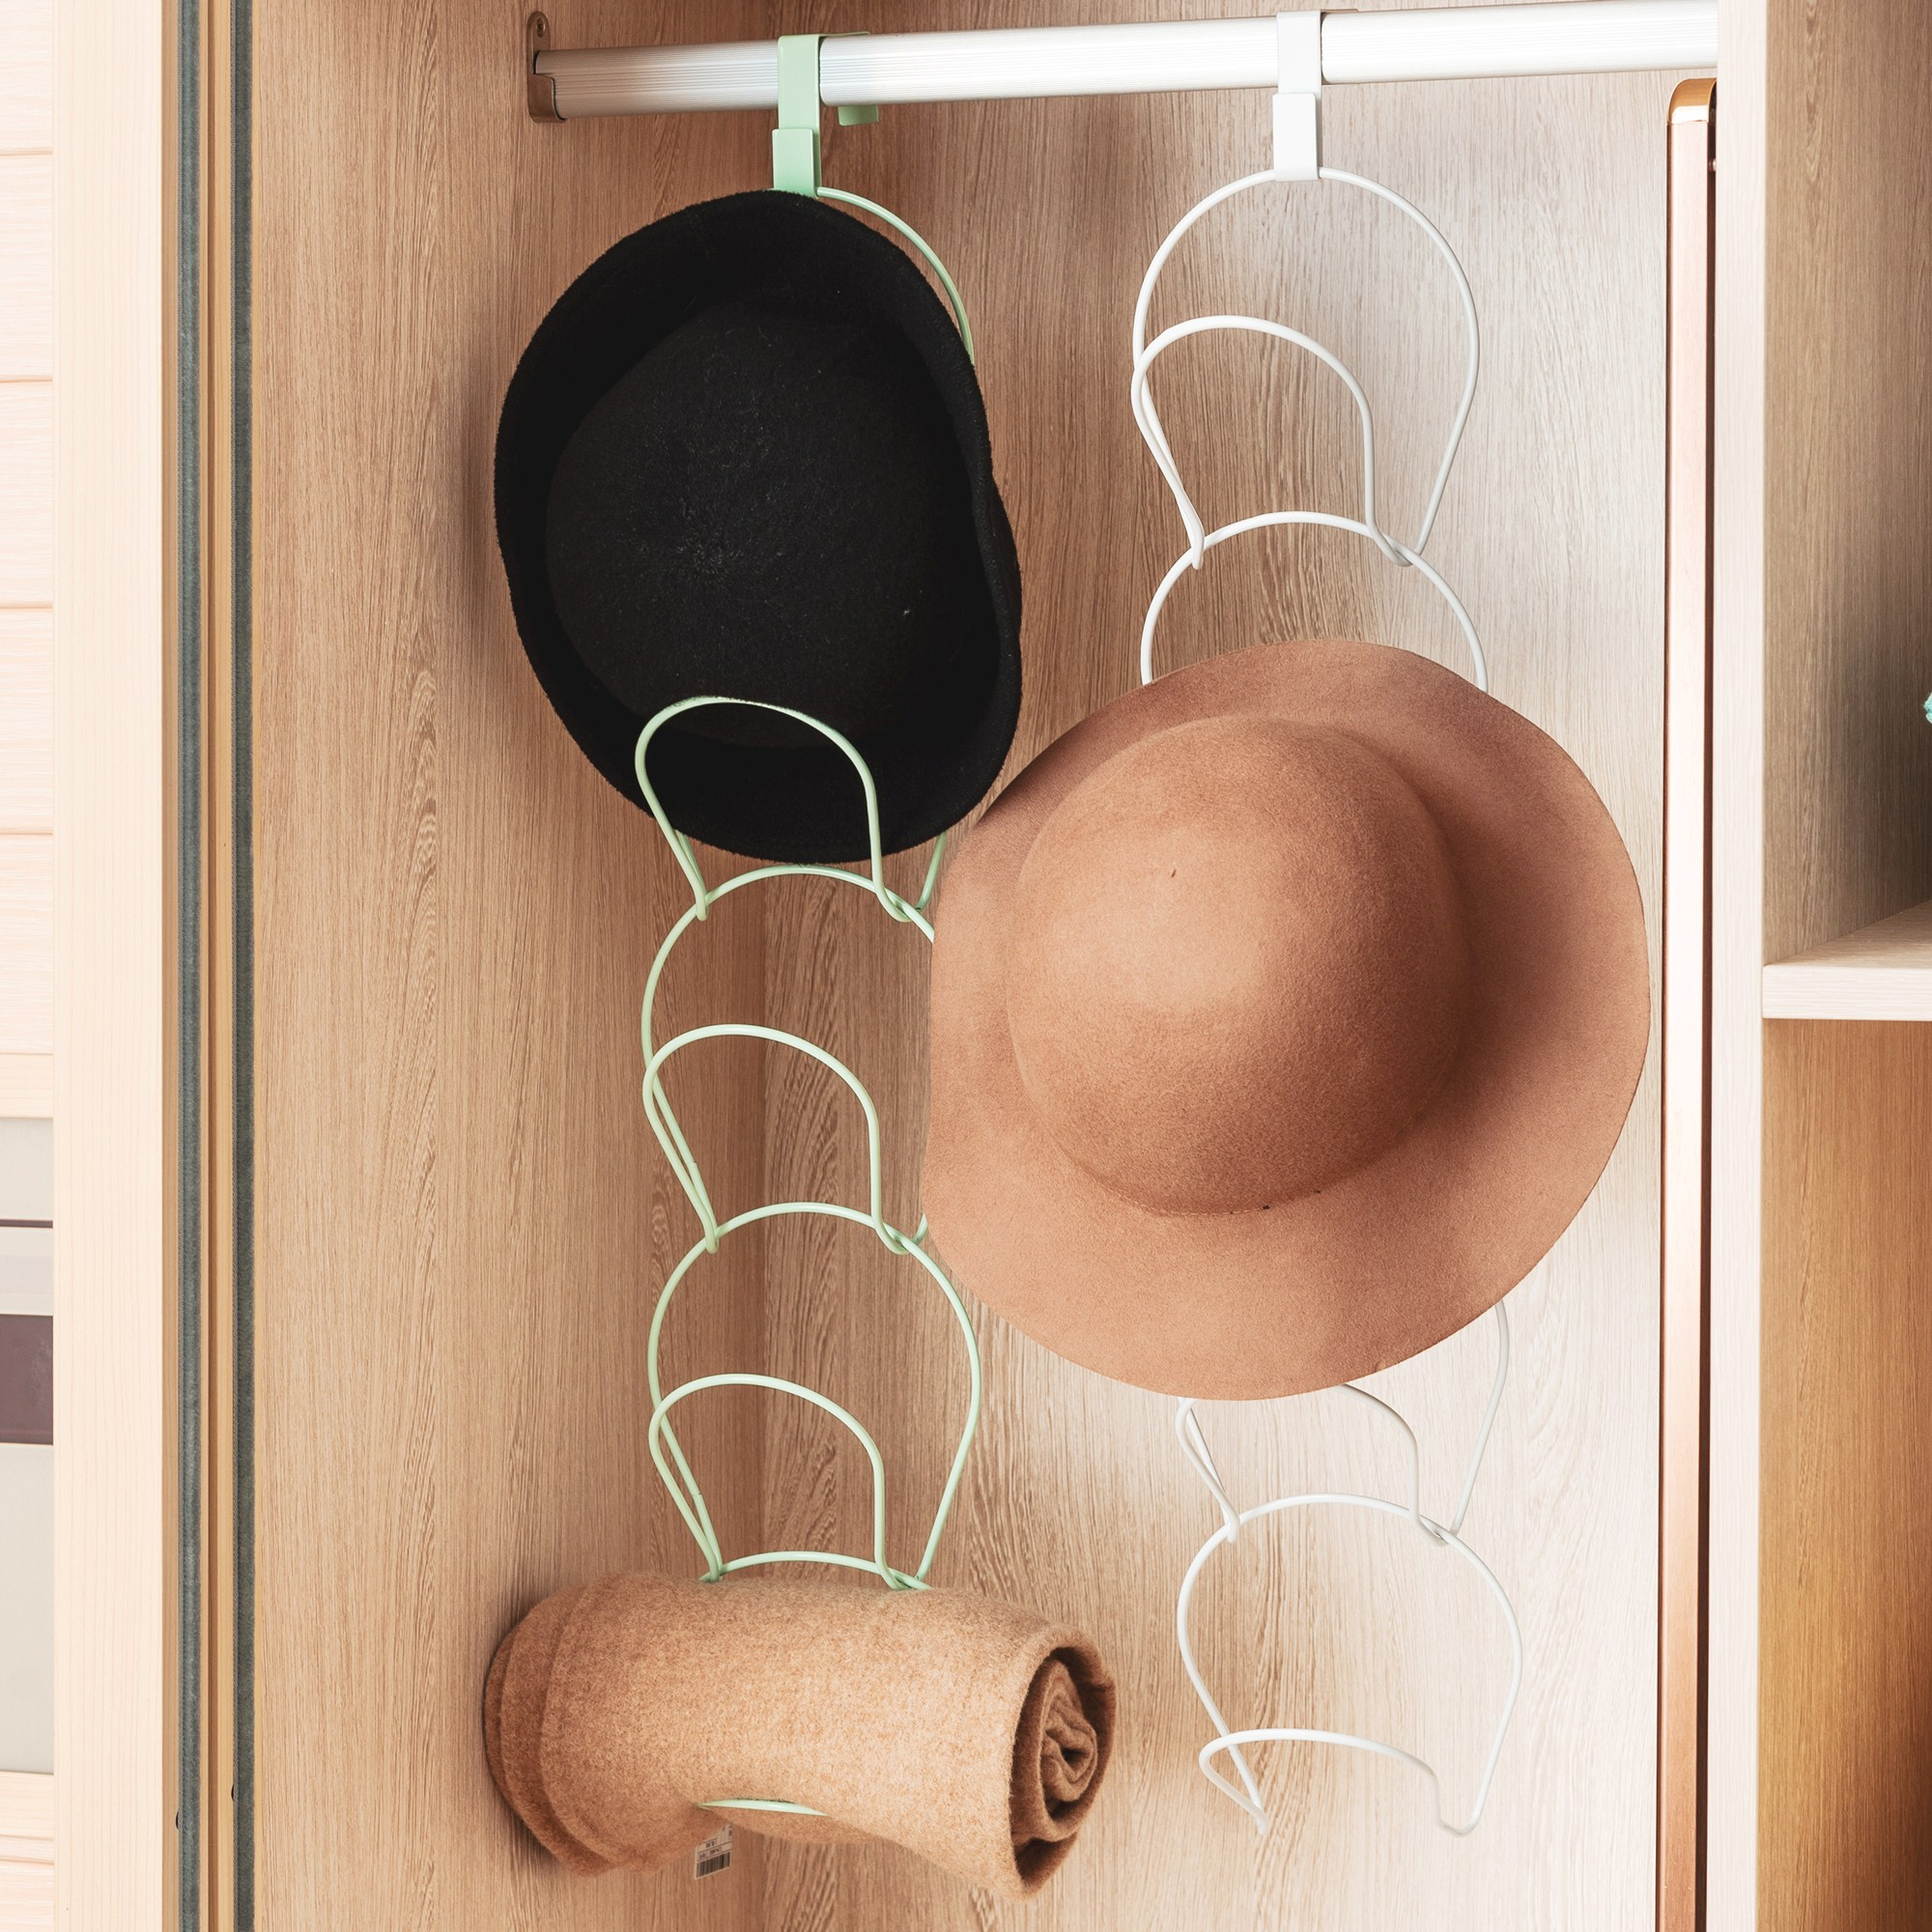 Cap Rack Hat Organizer 5 Pack Door Hanger Hook For Caps,Clothes,Towel,Kitchen,Baseball Cap Multifunctional Door/Wall Mounted